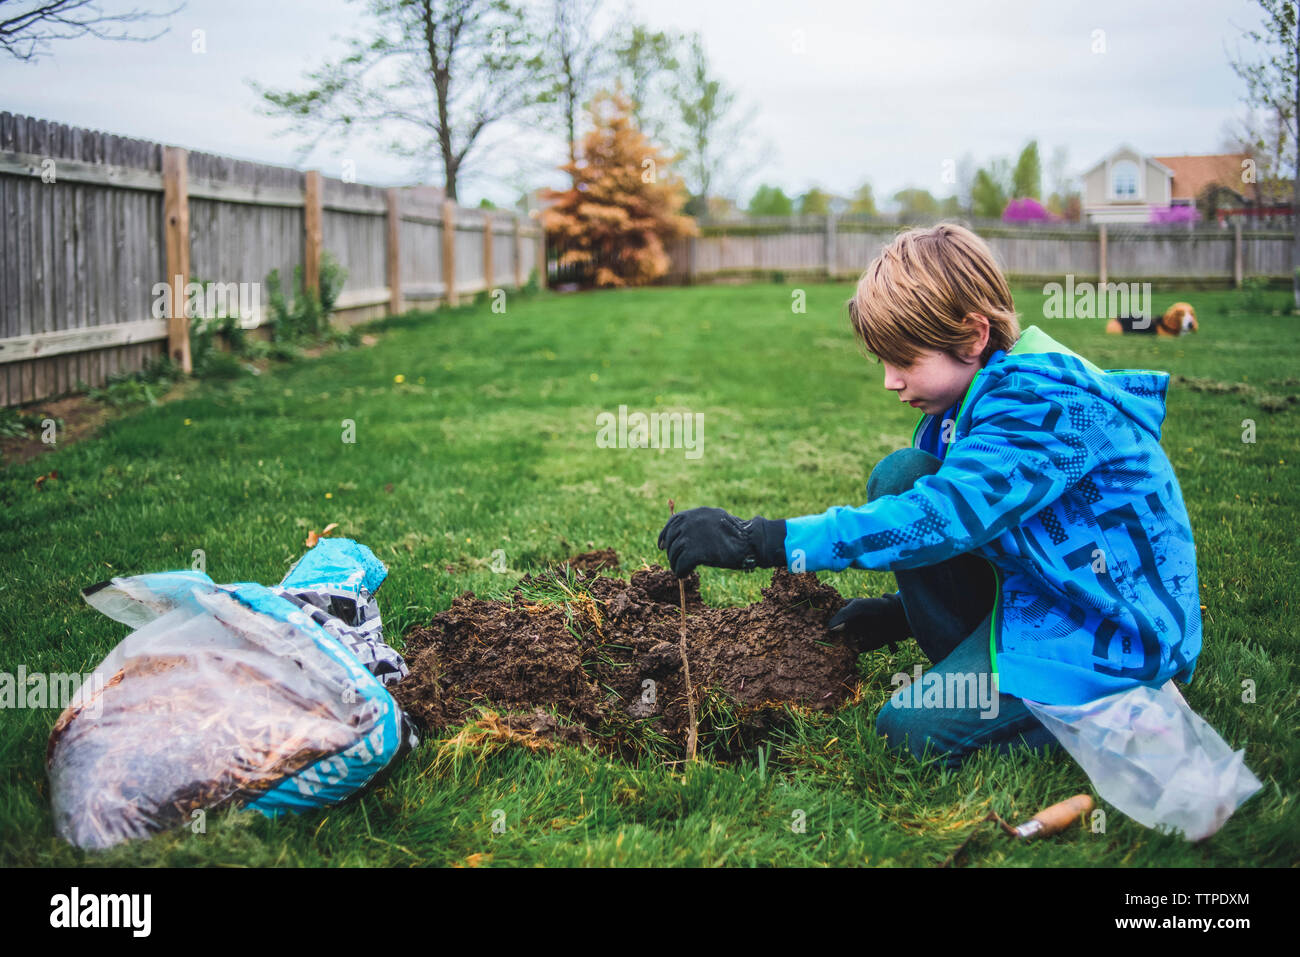 Side view of boy gardening while kneeling at yard with dog in background - Stock Image